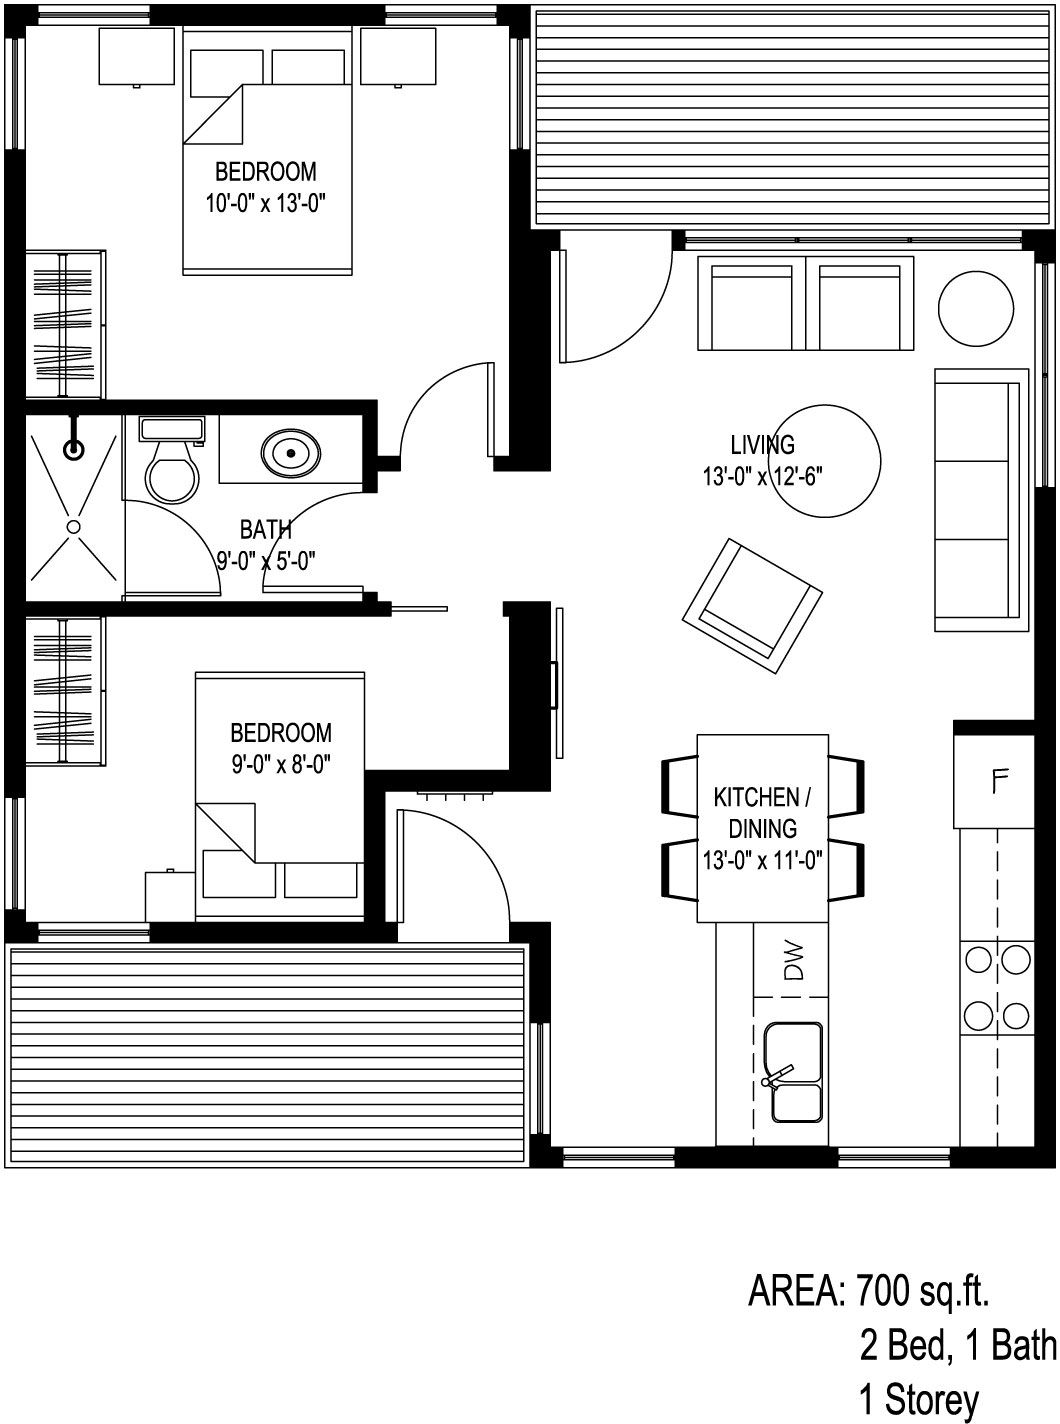 Wow Here Is A Great 2 Bedroom Floorplan With A Front And Back Porch I See Lots Of Flow Entertaining Options Small House Plans House Plans Tiny House Plans